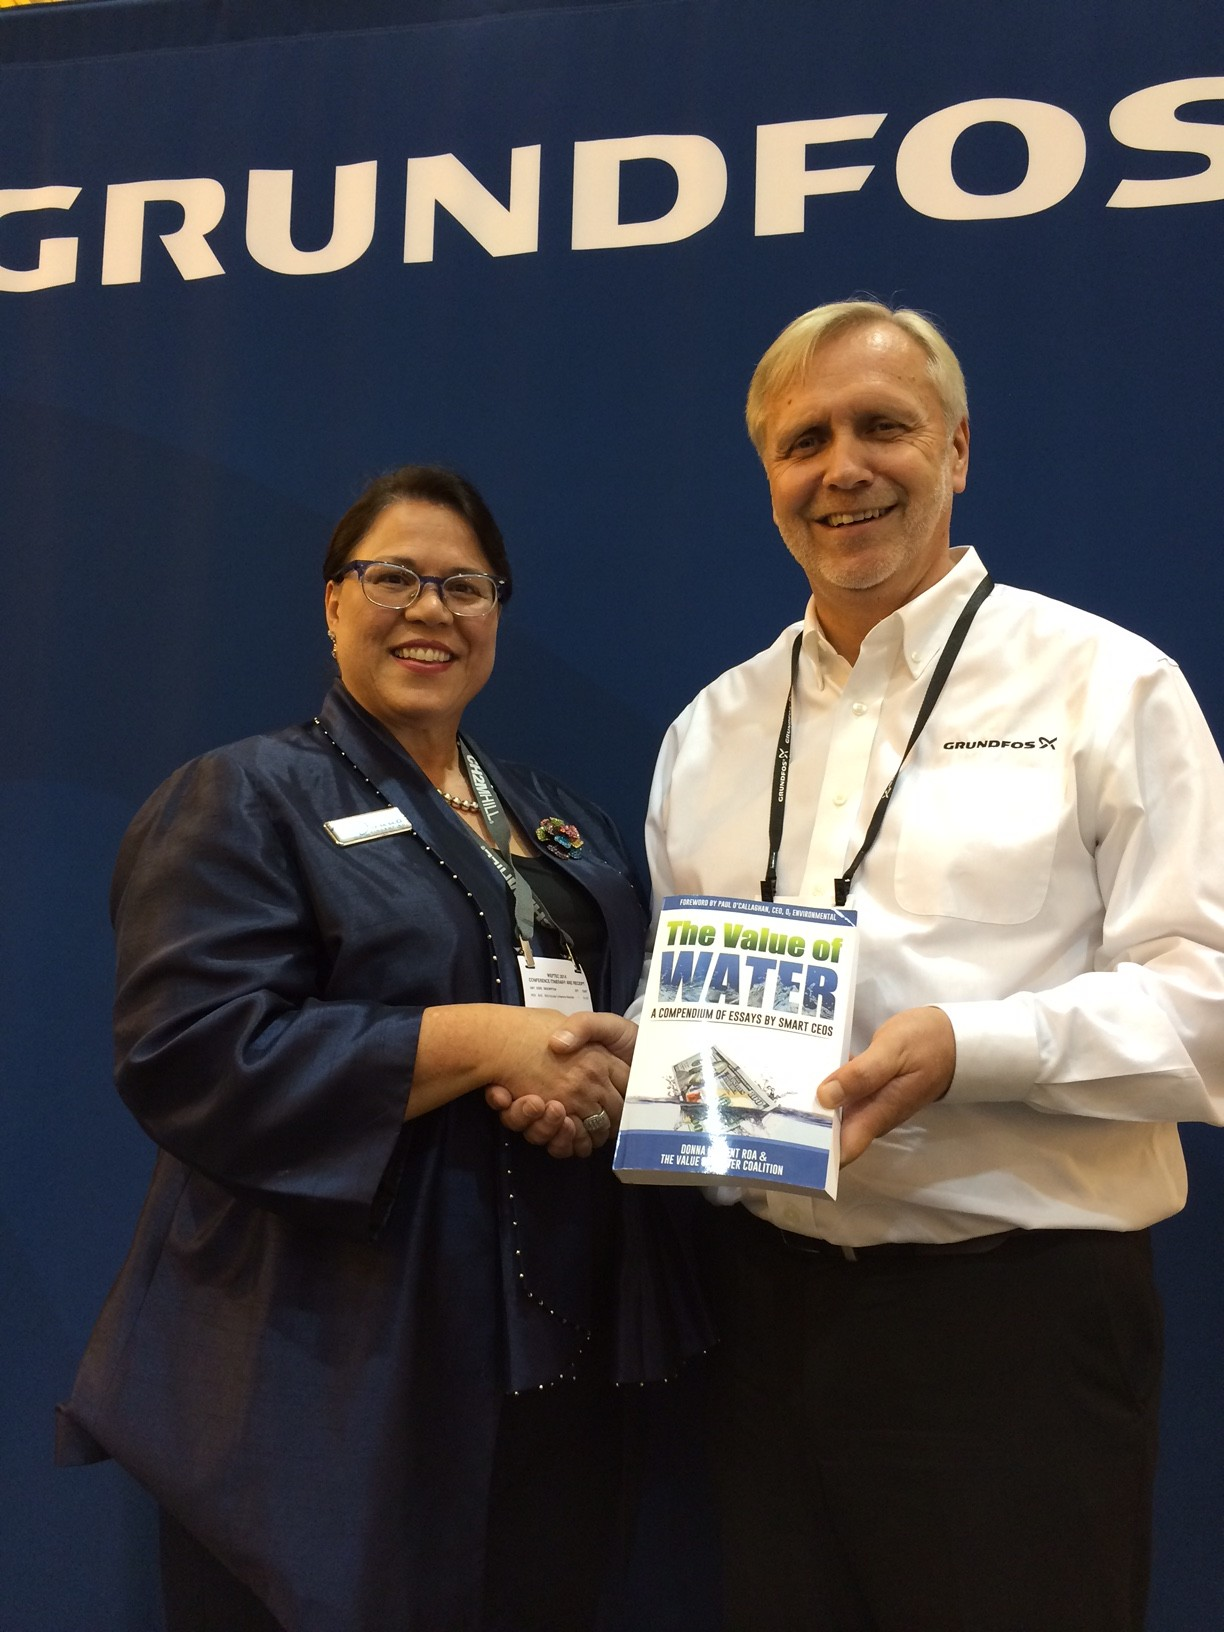 The Value of Water Book at WEFTEC